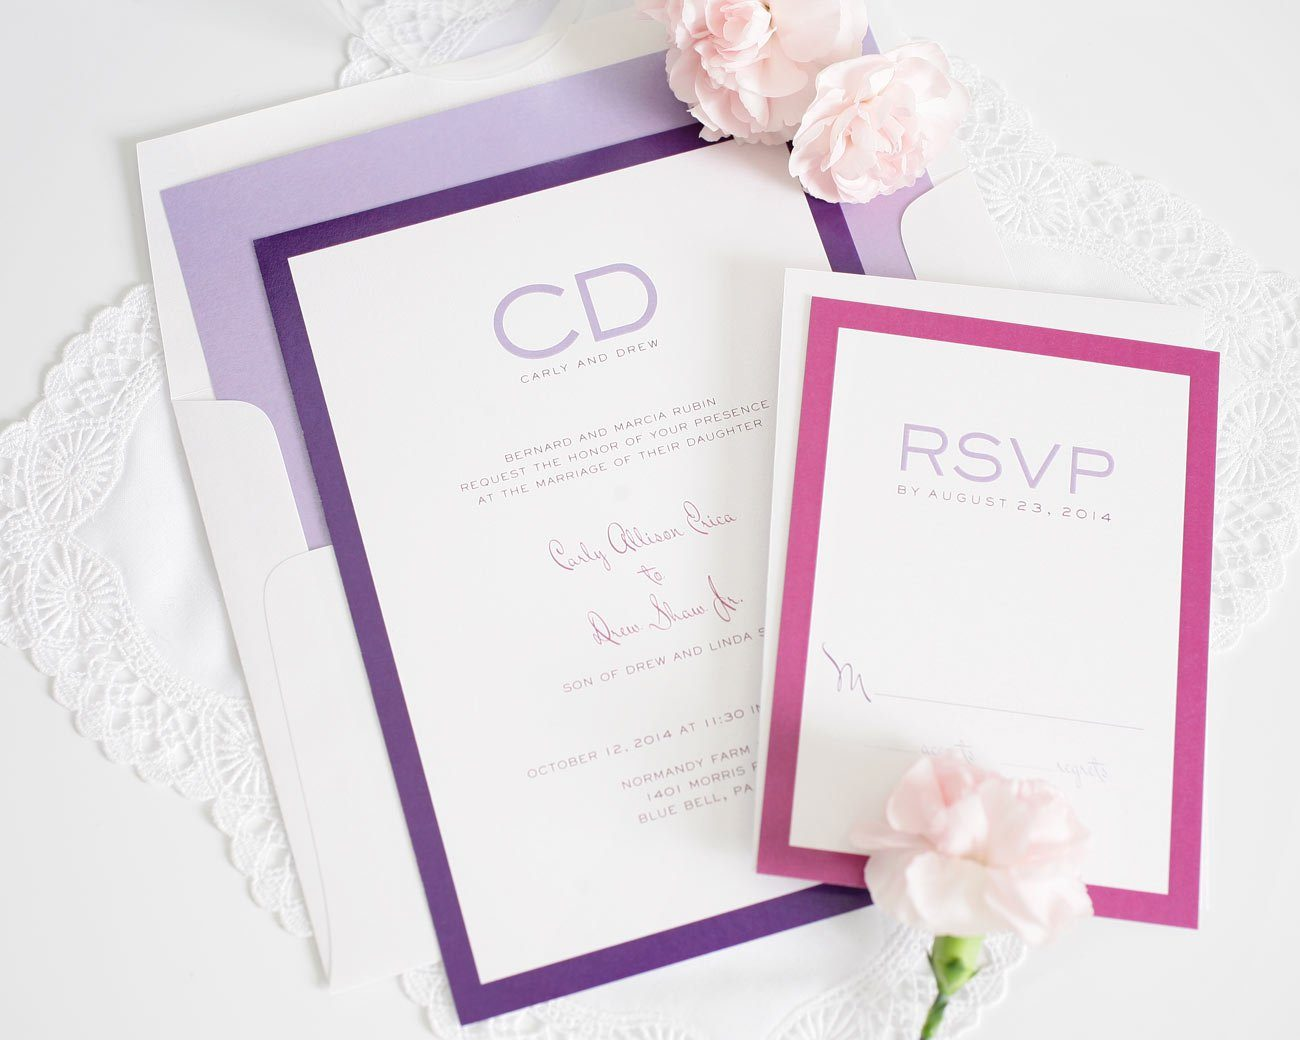 Modern luxe wedding invitations with purple accents